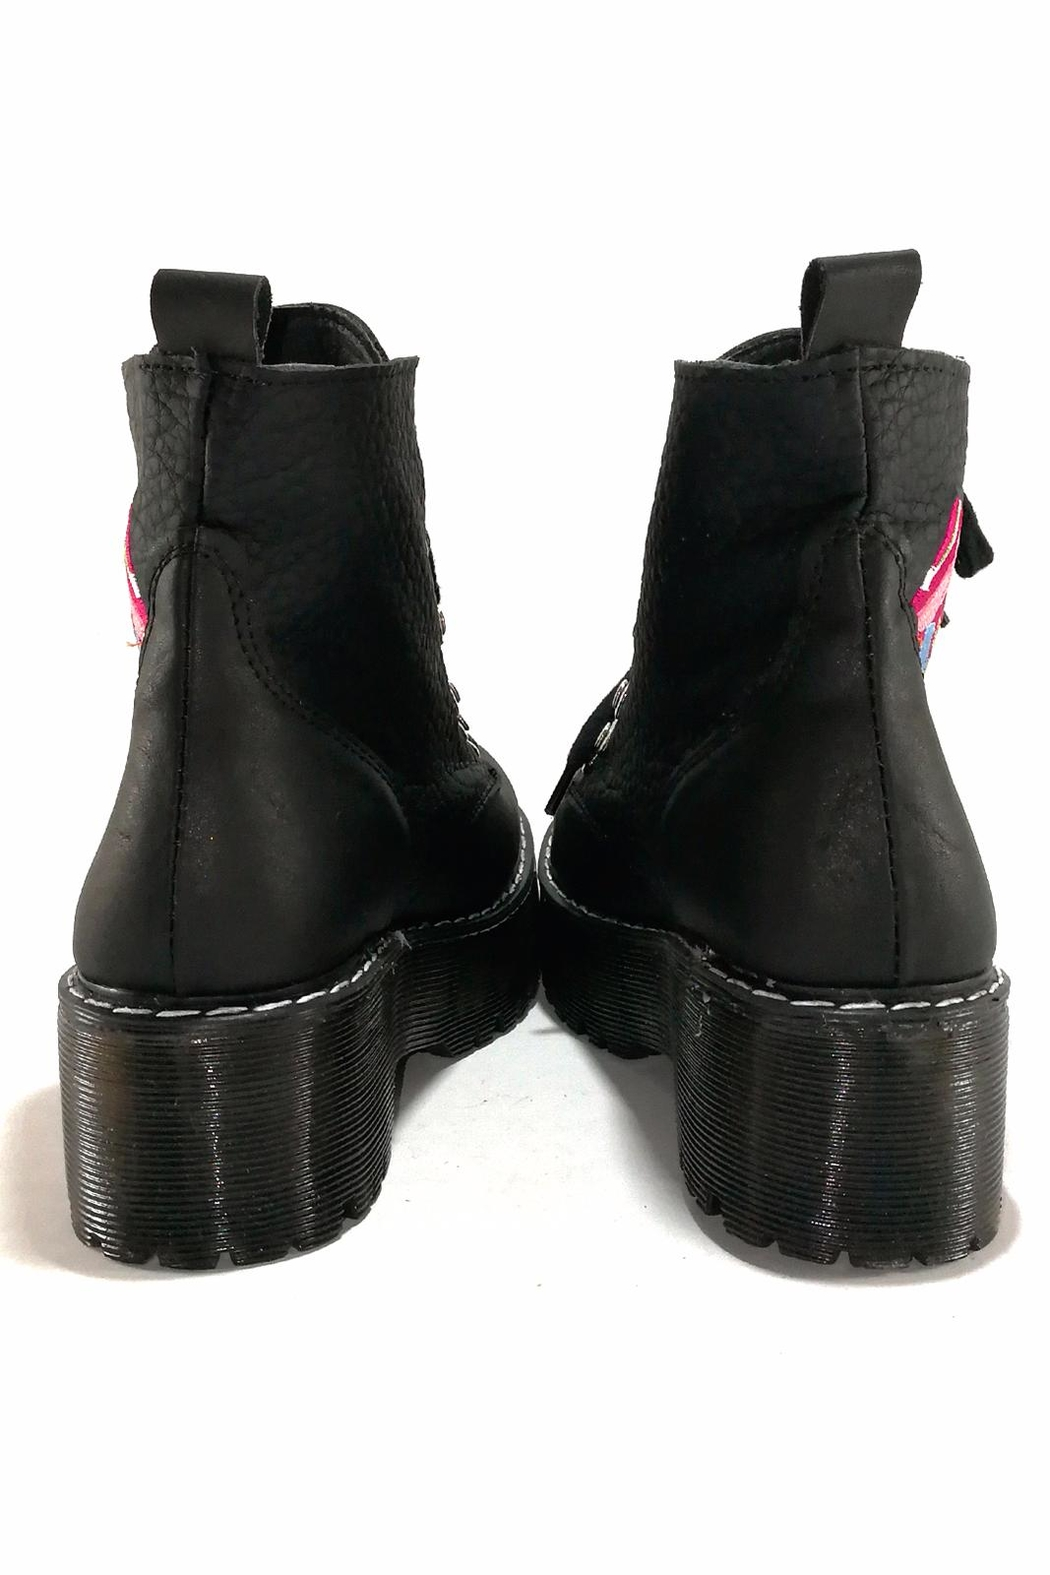 MIYE COLLAZZO Black Butterfly Boots - Side Cropped Image